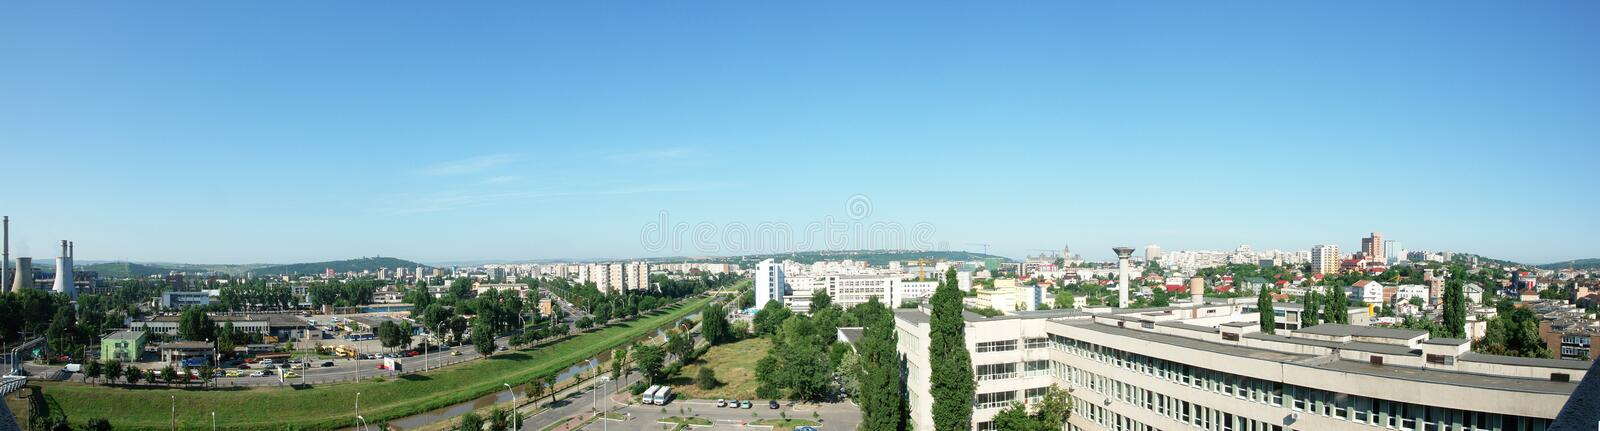 Panoramic view of Iasi city with Bahlui river royalty free stock photos